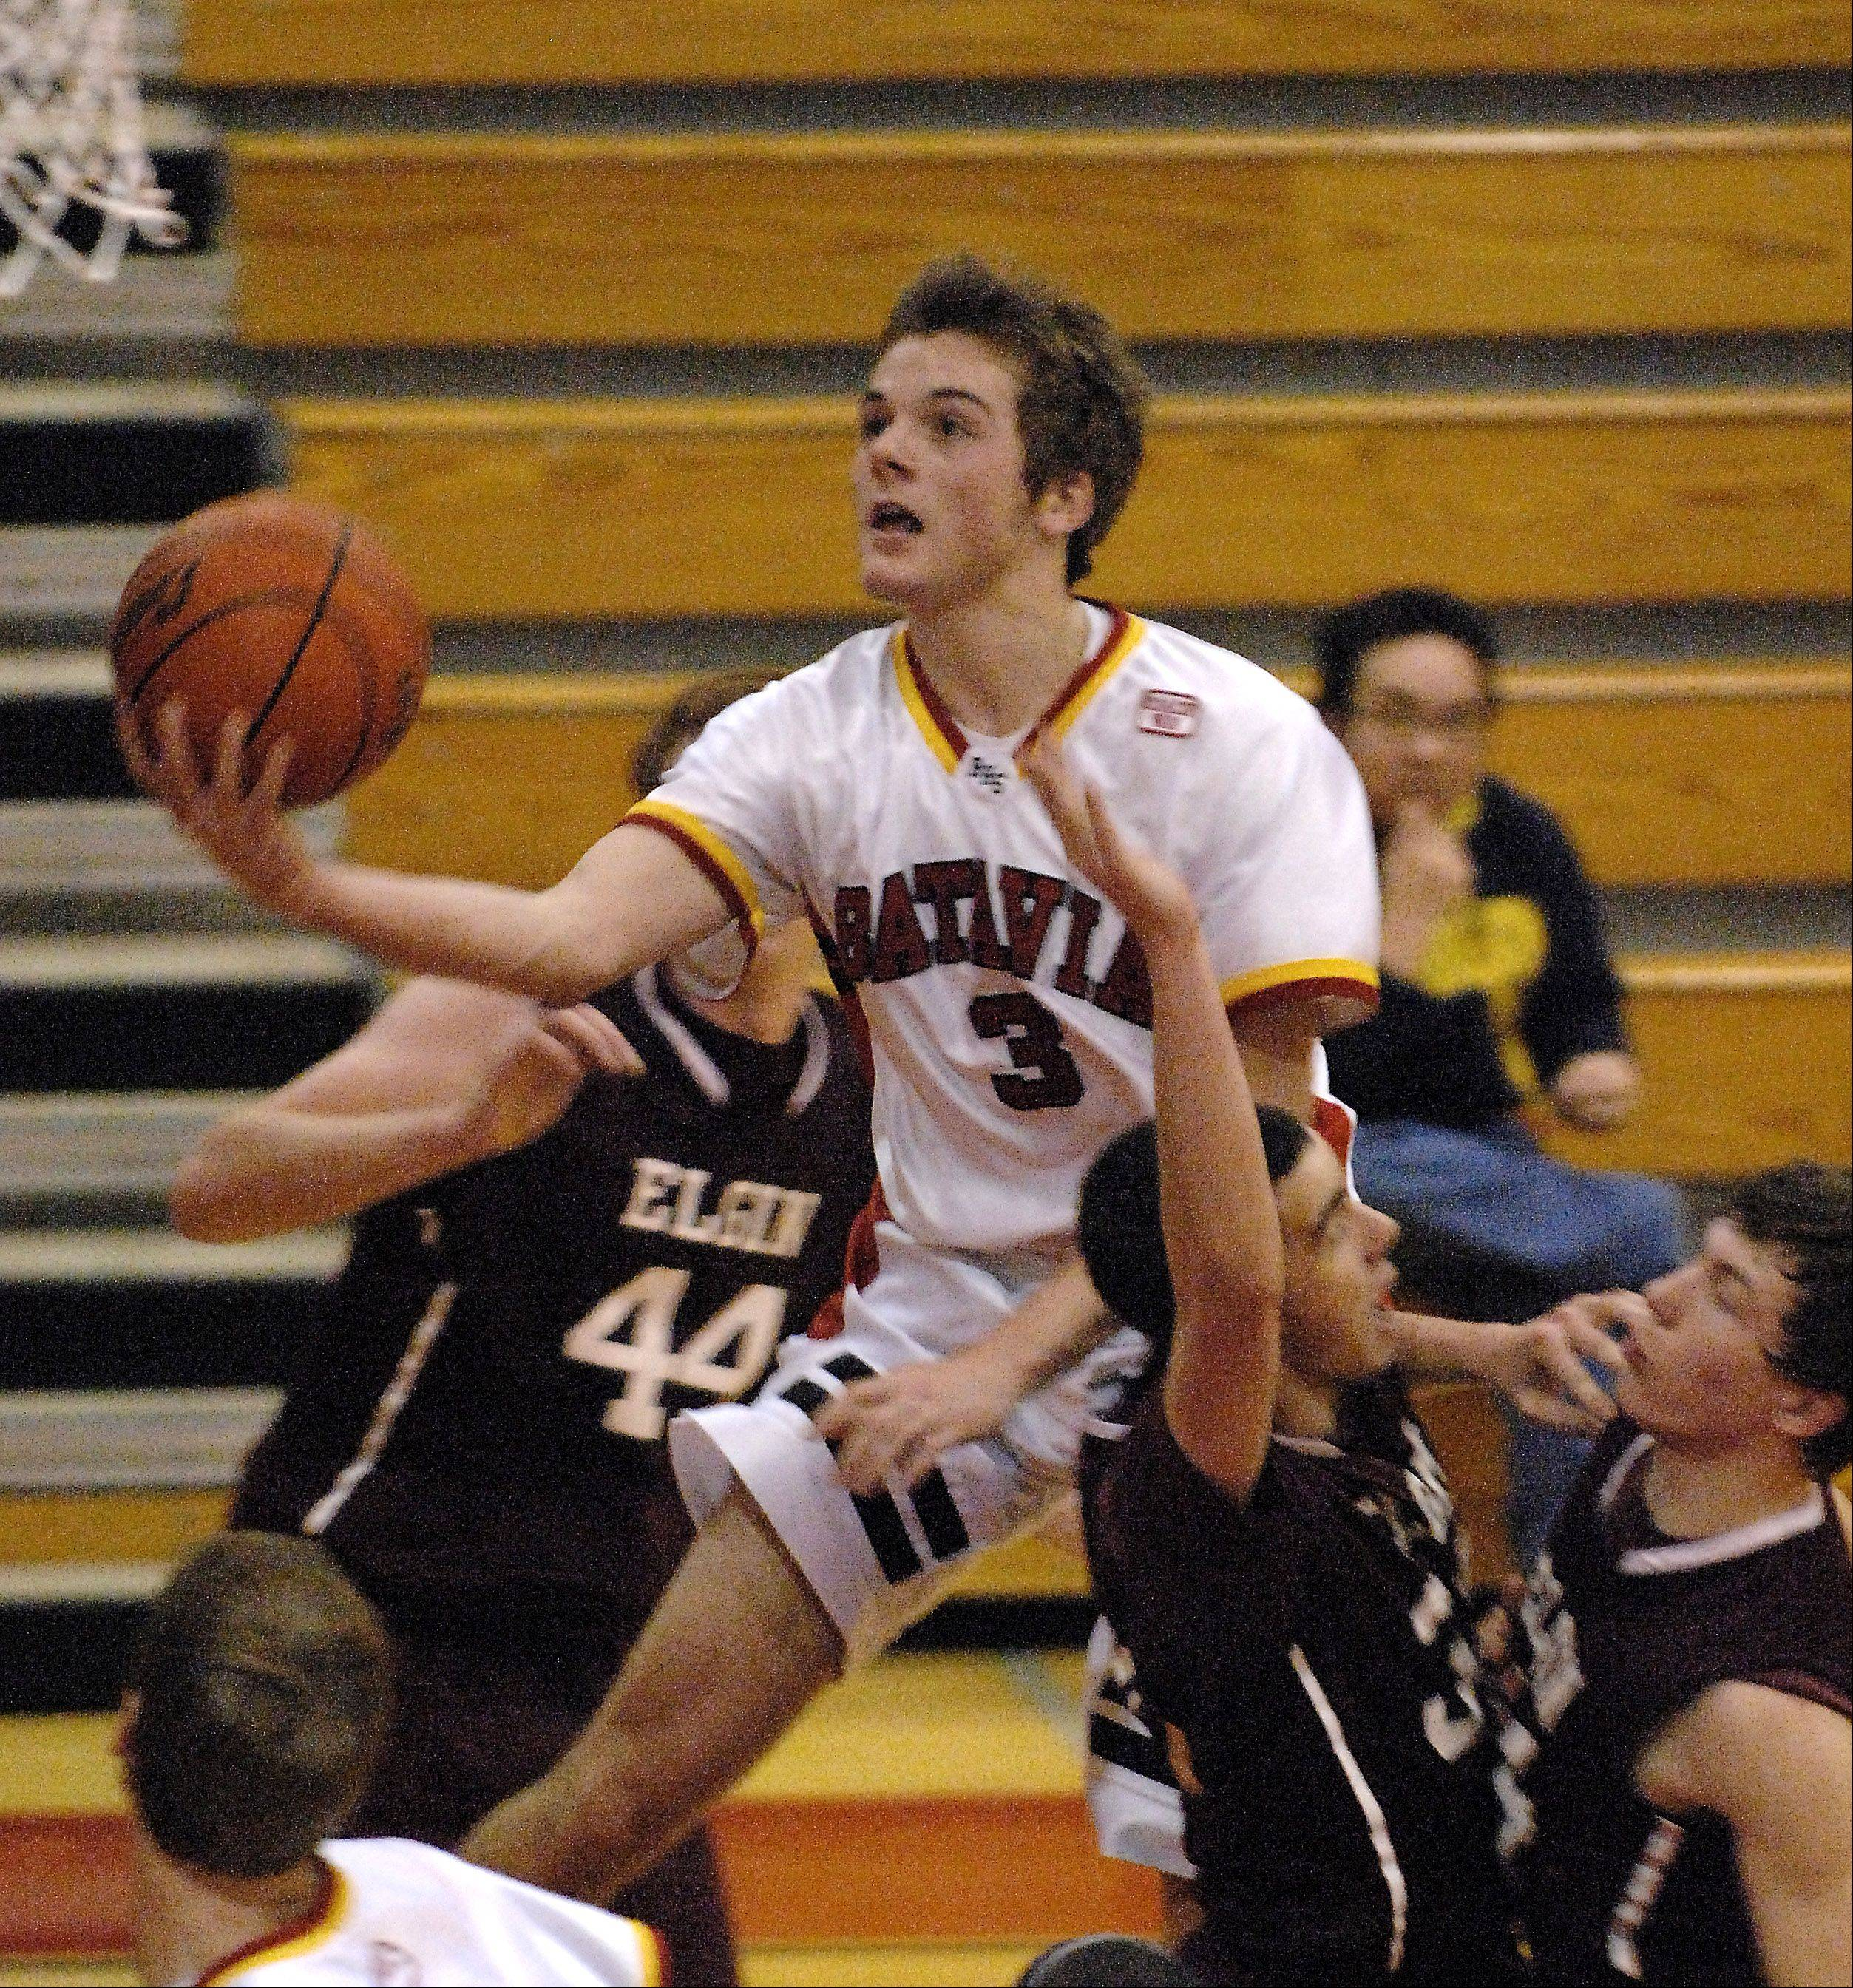 Batavia's Jake Pollack drives through the lane and scores against Elgin .